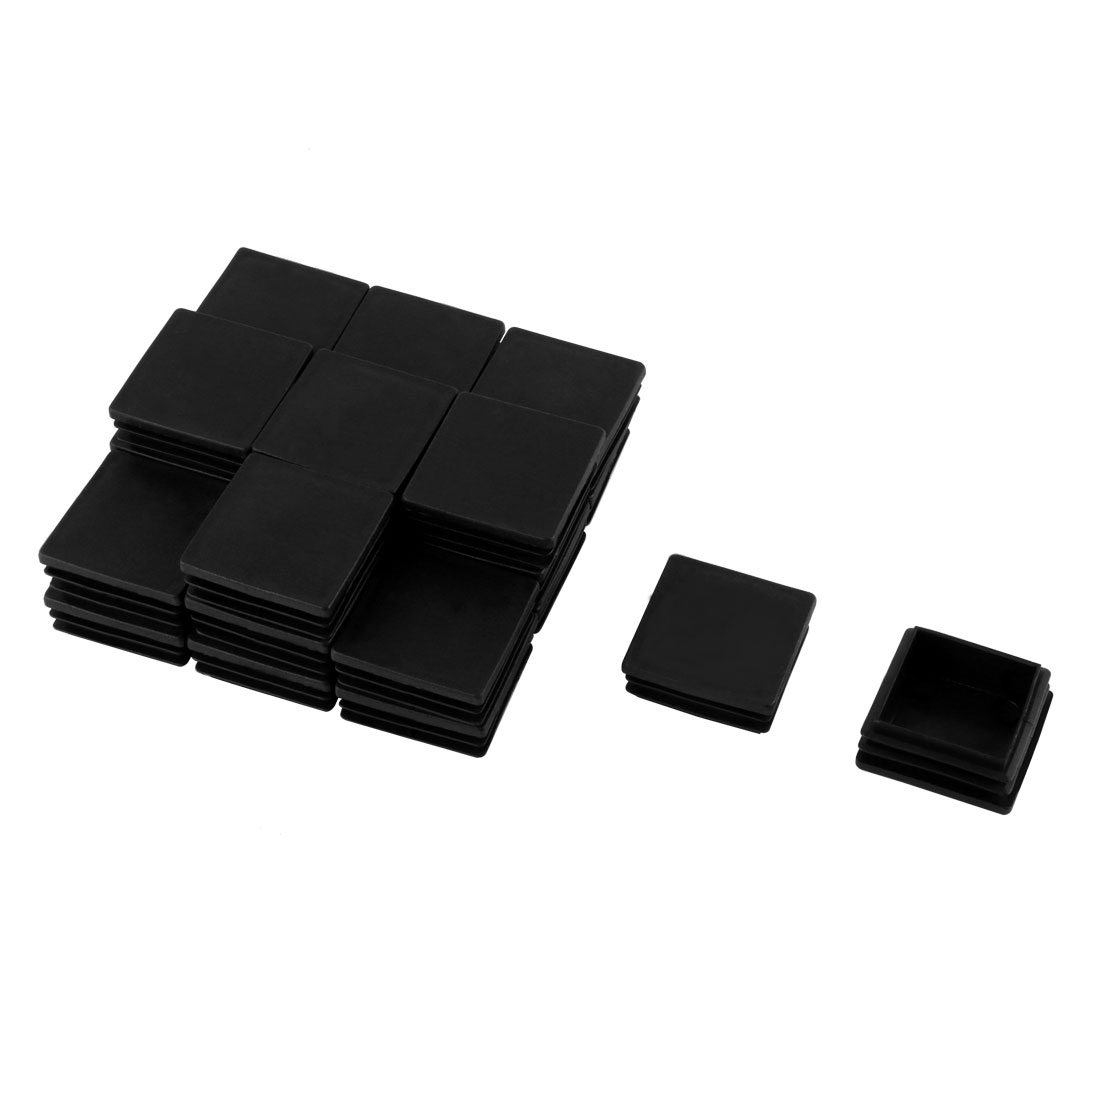 24 Pcs Black Plastic Square Blanking End Caps Tubing Tube Cover Inserts 45mm x 45mm